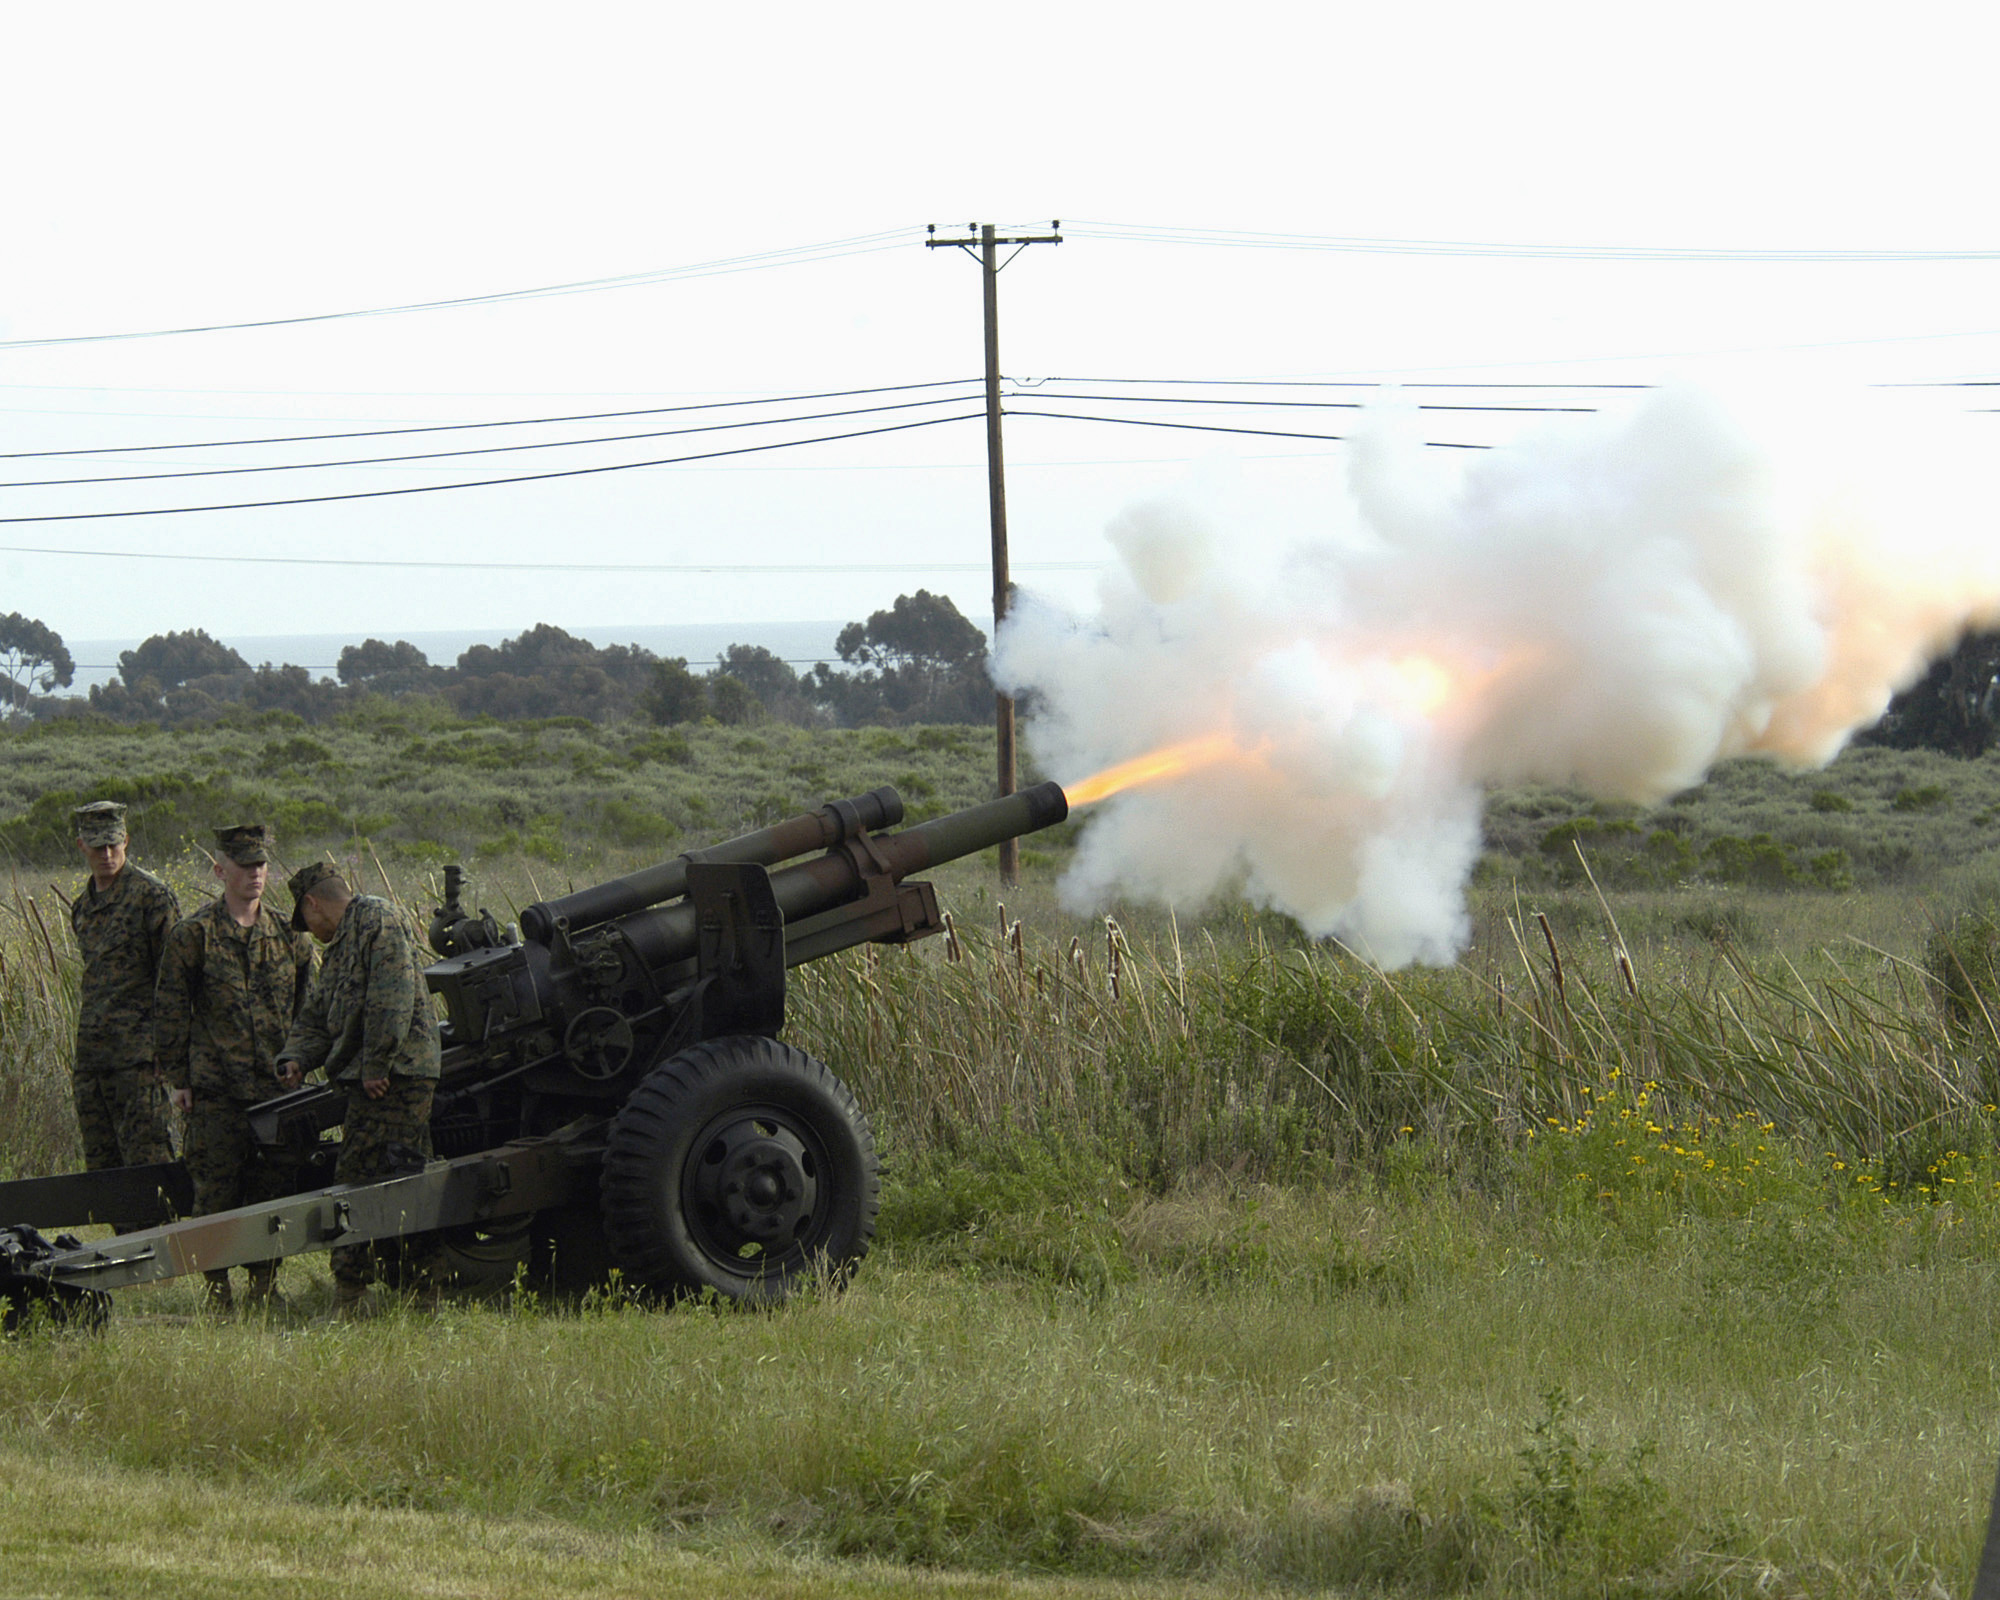 U.S. Marines fire blank rounds from a M101 howitzer at a ceremony